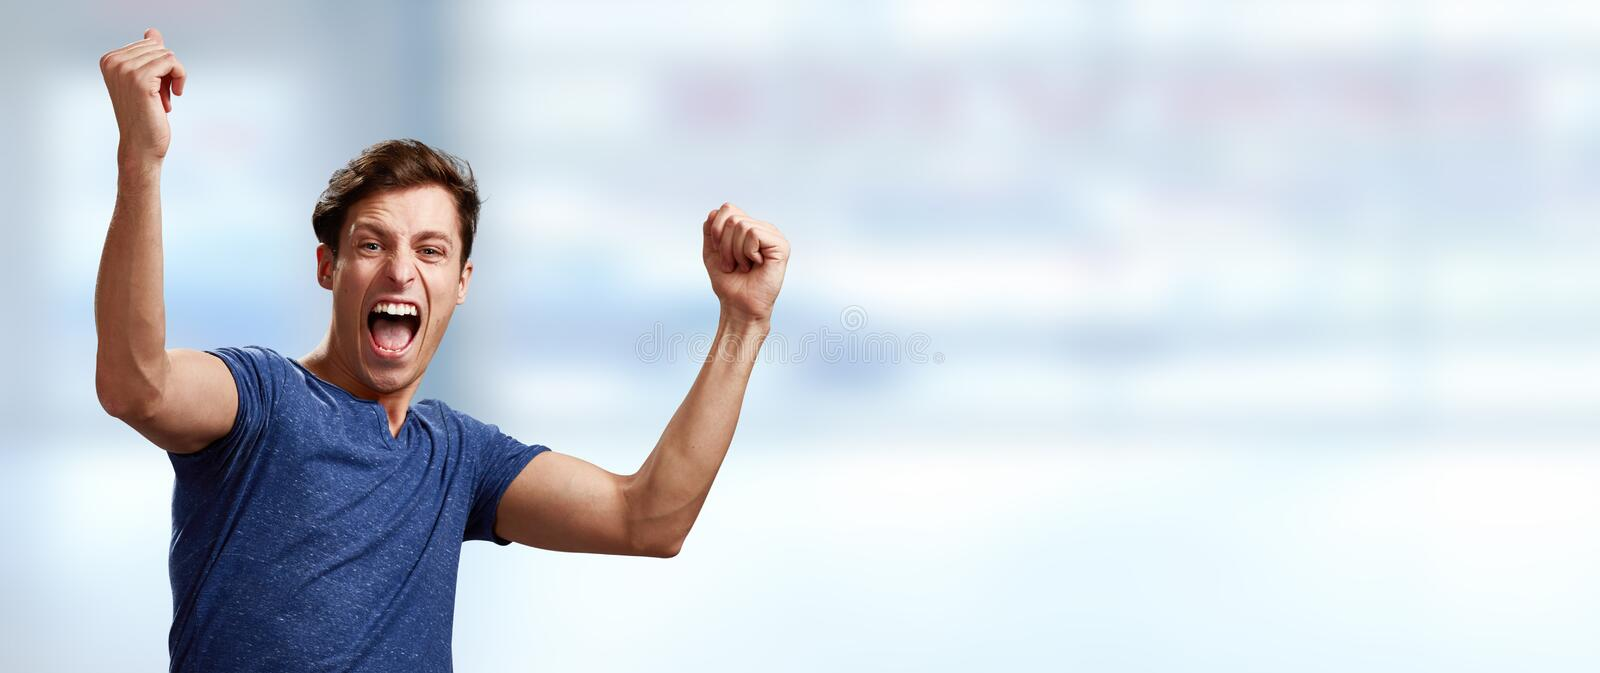 Happy young man. Happy excited laughing winner young man face expression stock photo